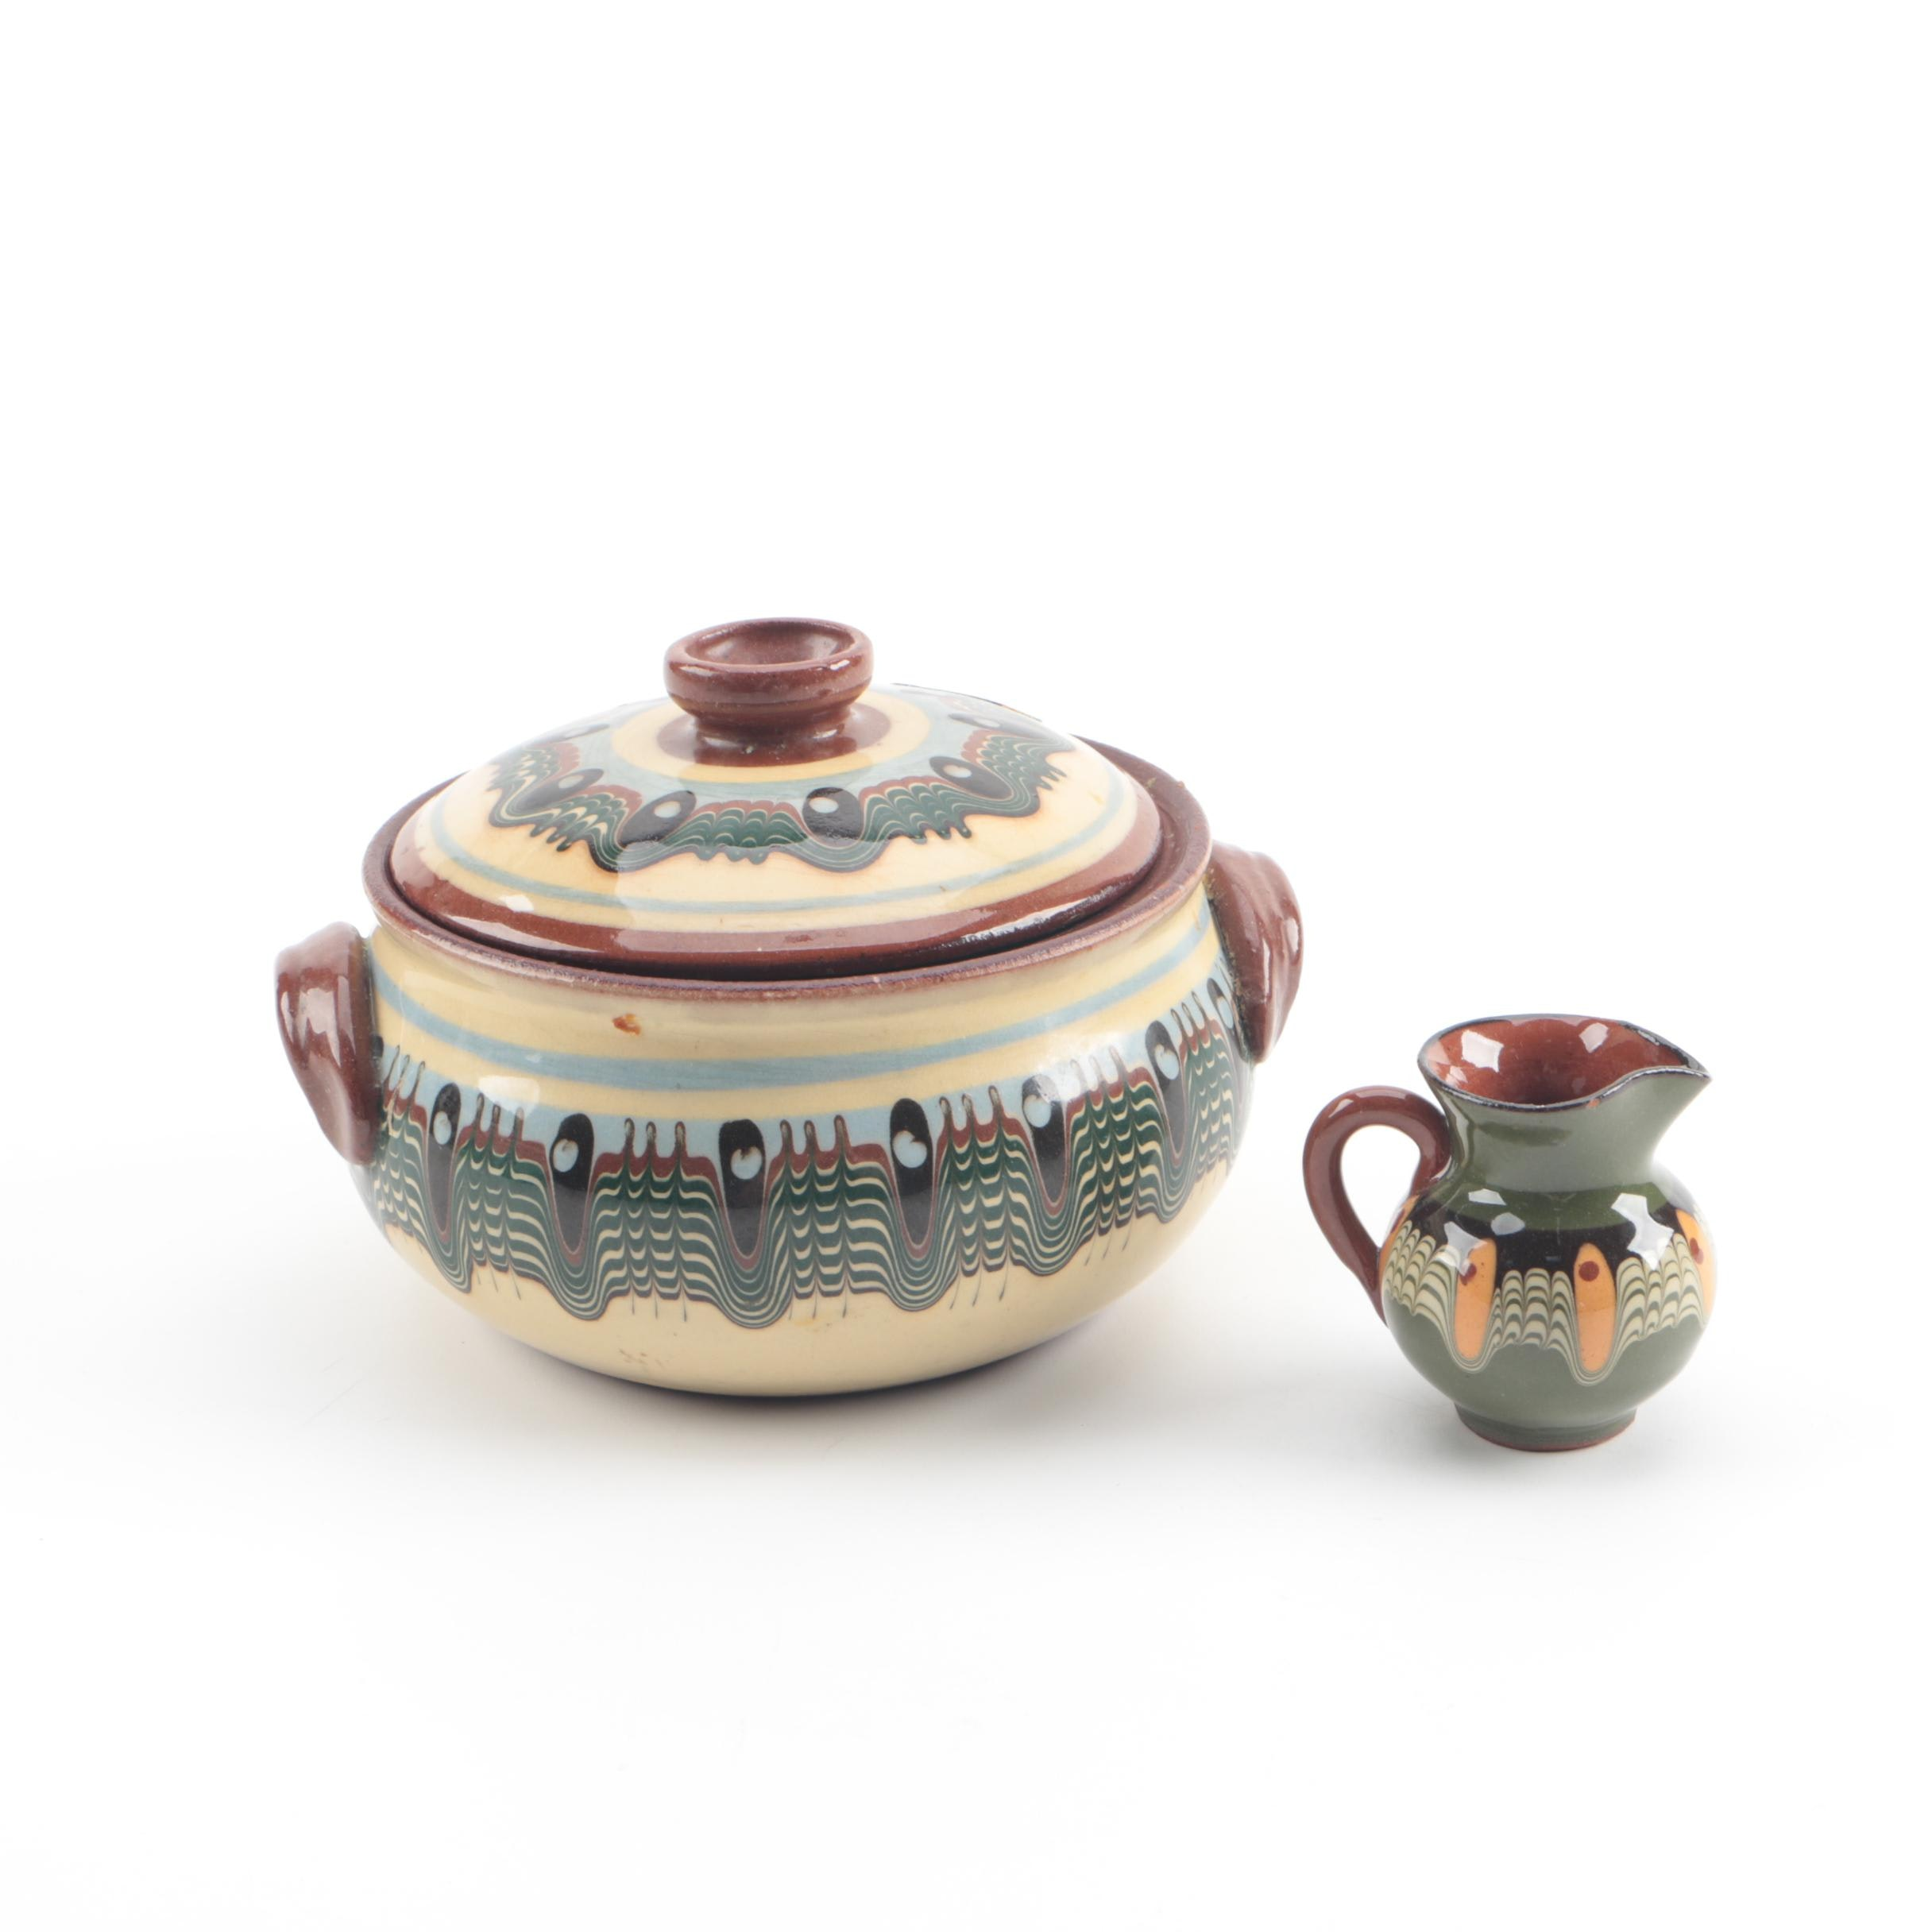 Bulgarian Hand-Painted Earthenware Covered Dish and Miniature Pitcher for Bulgar